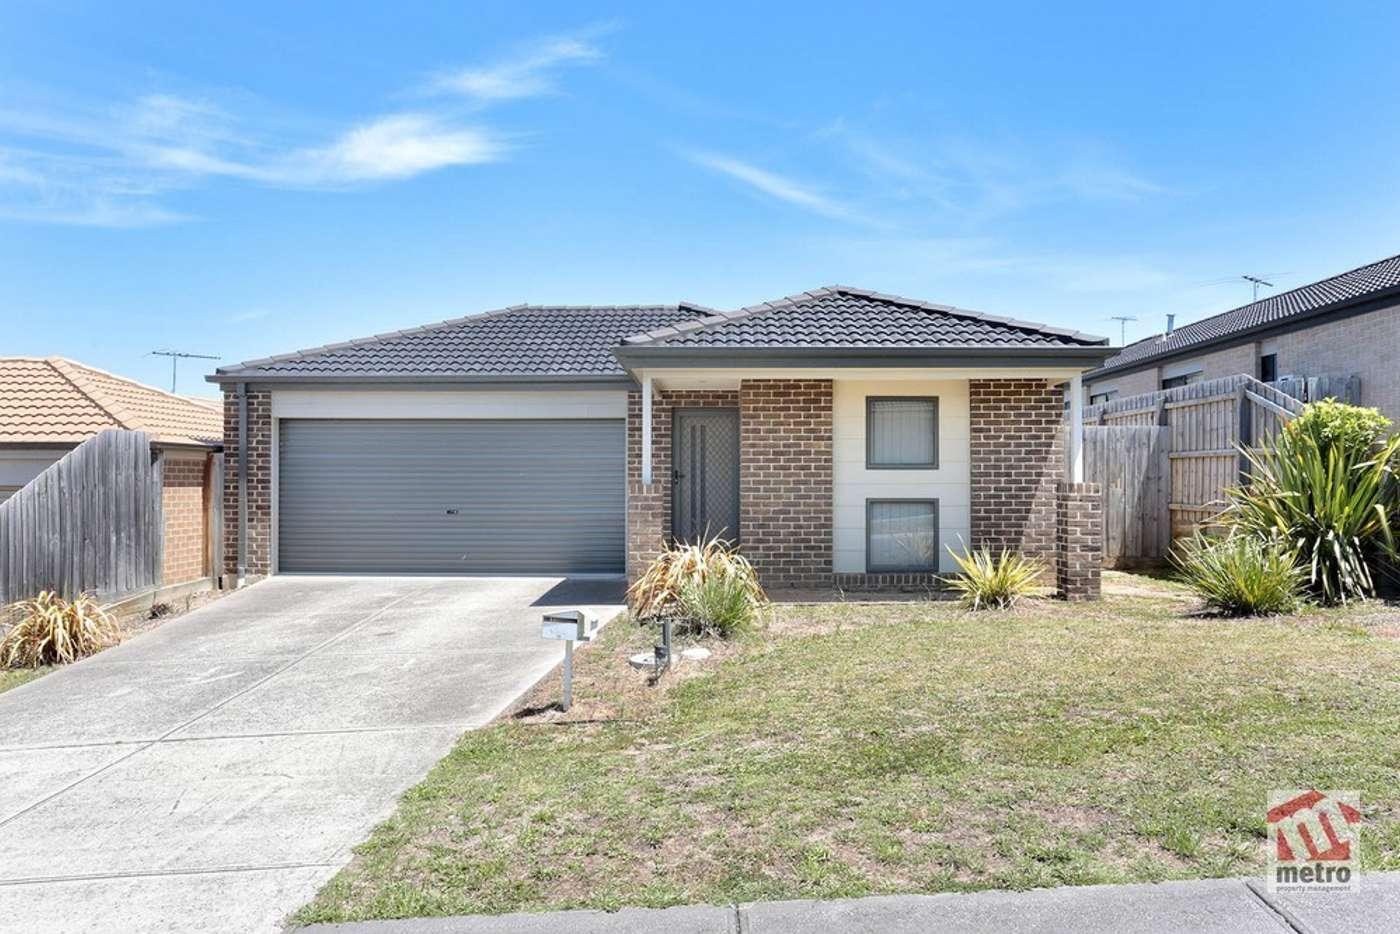 Main view of Homely house listing, 11 Alapont Close, Pakenham VIC 3810